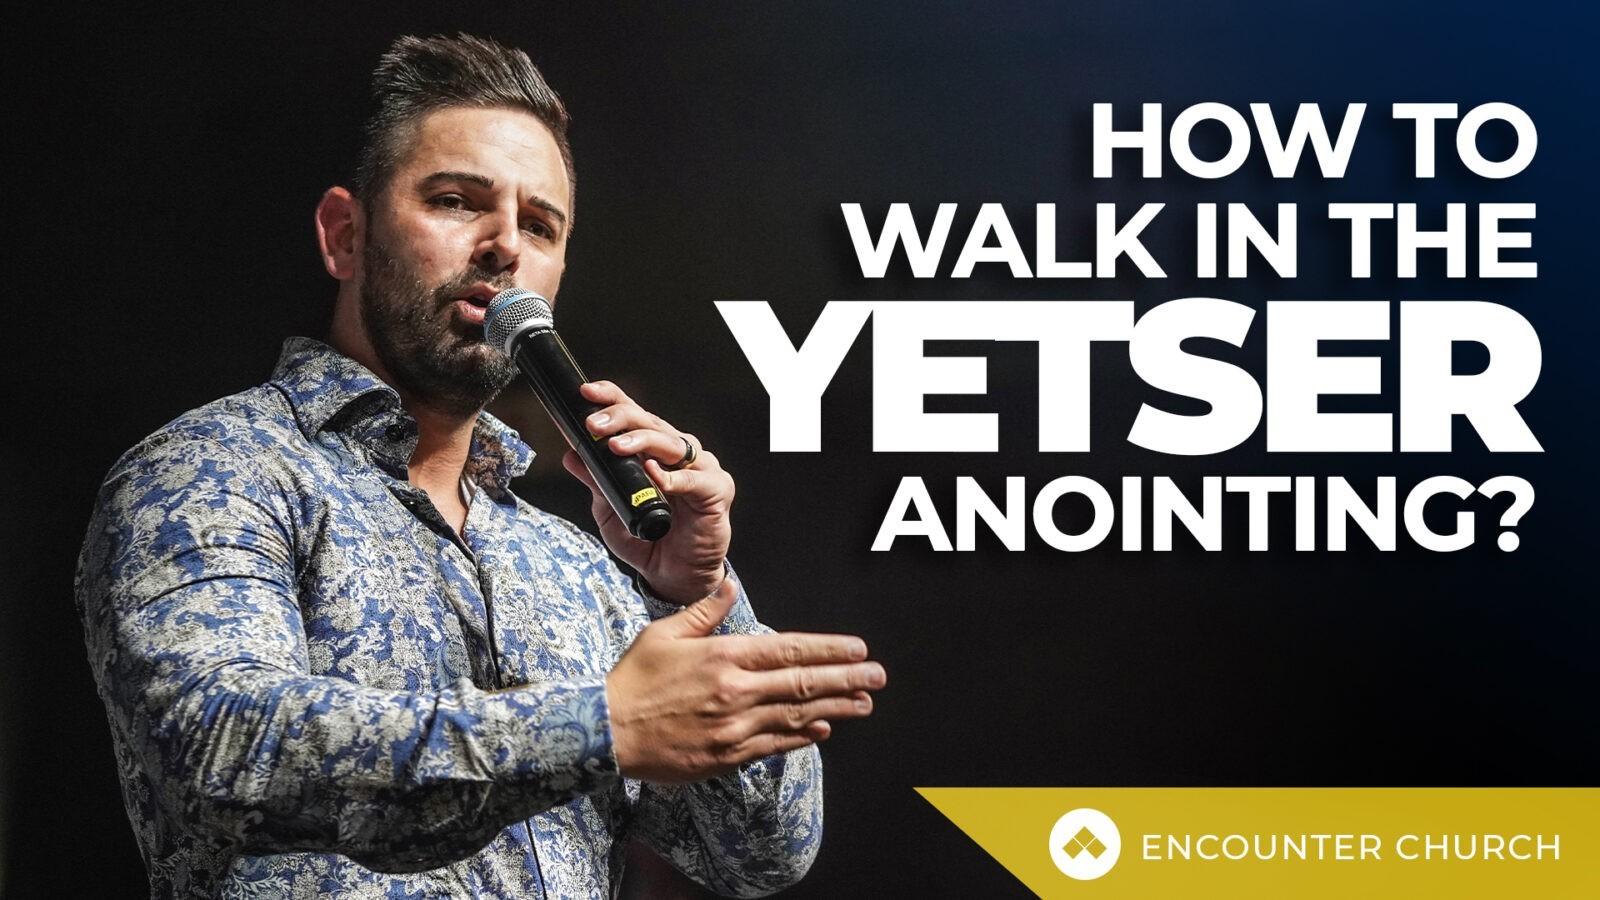 How to walk in the Yetser Anointing?